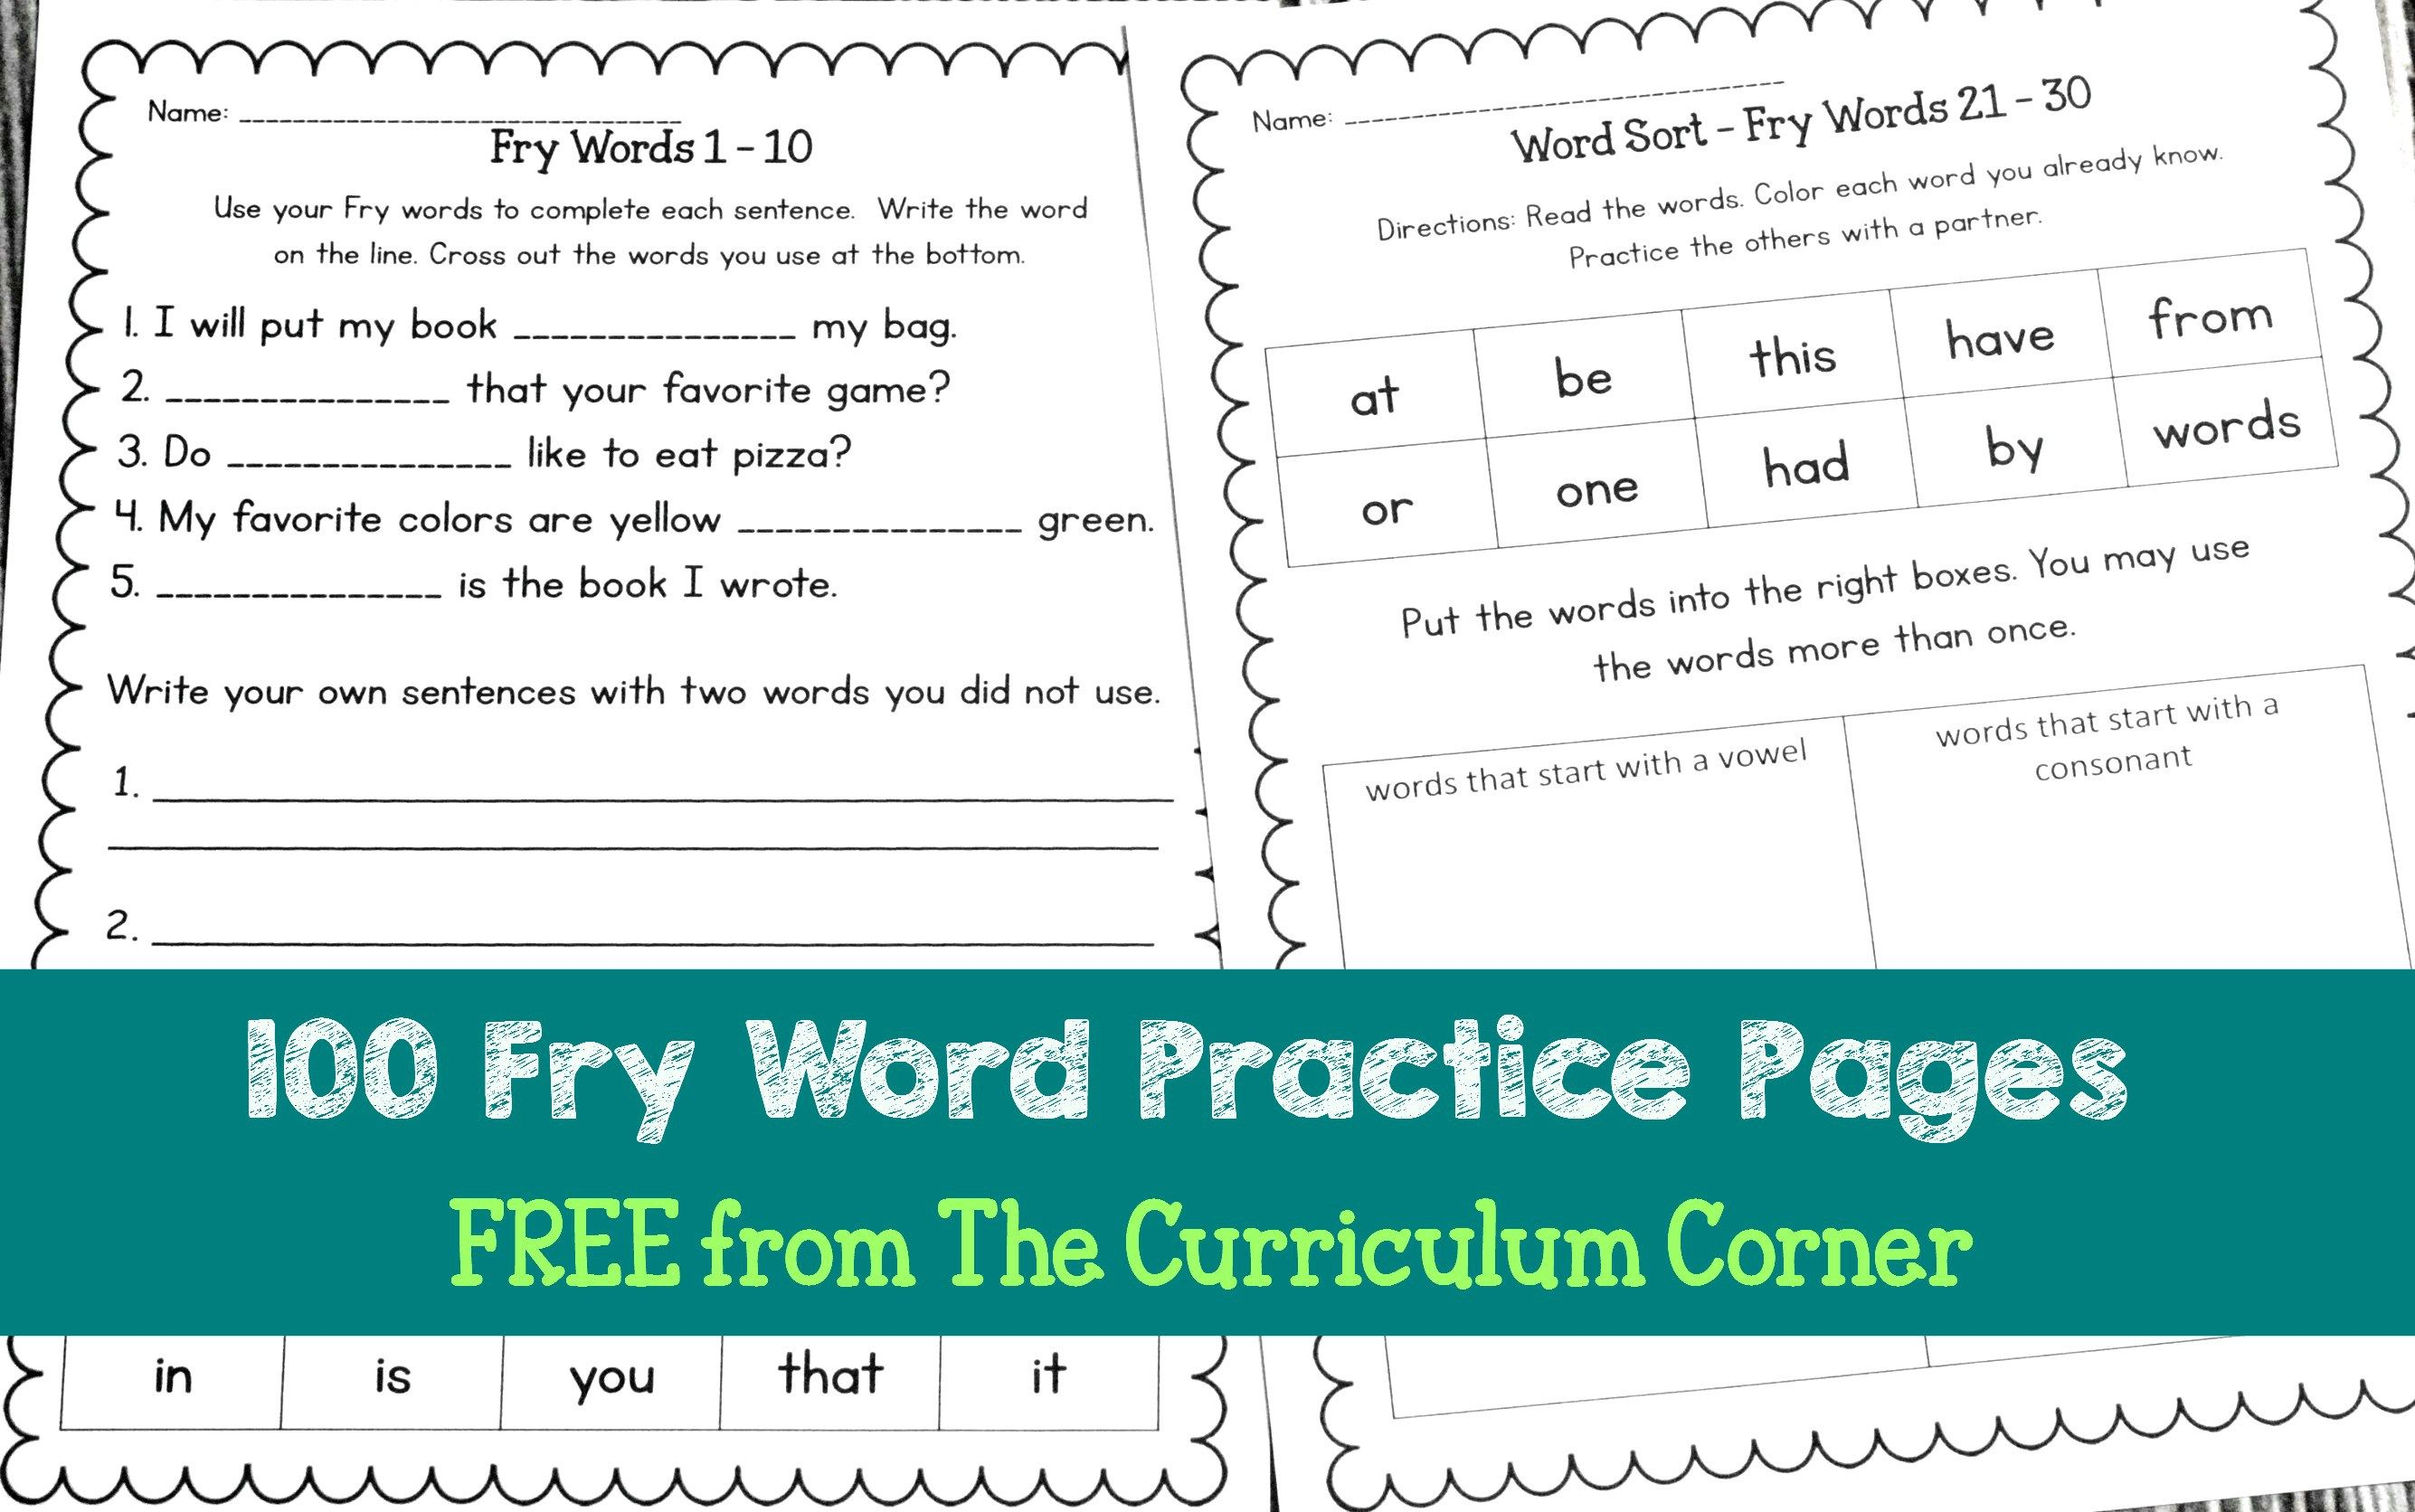 Free Fry Word Practice Pages